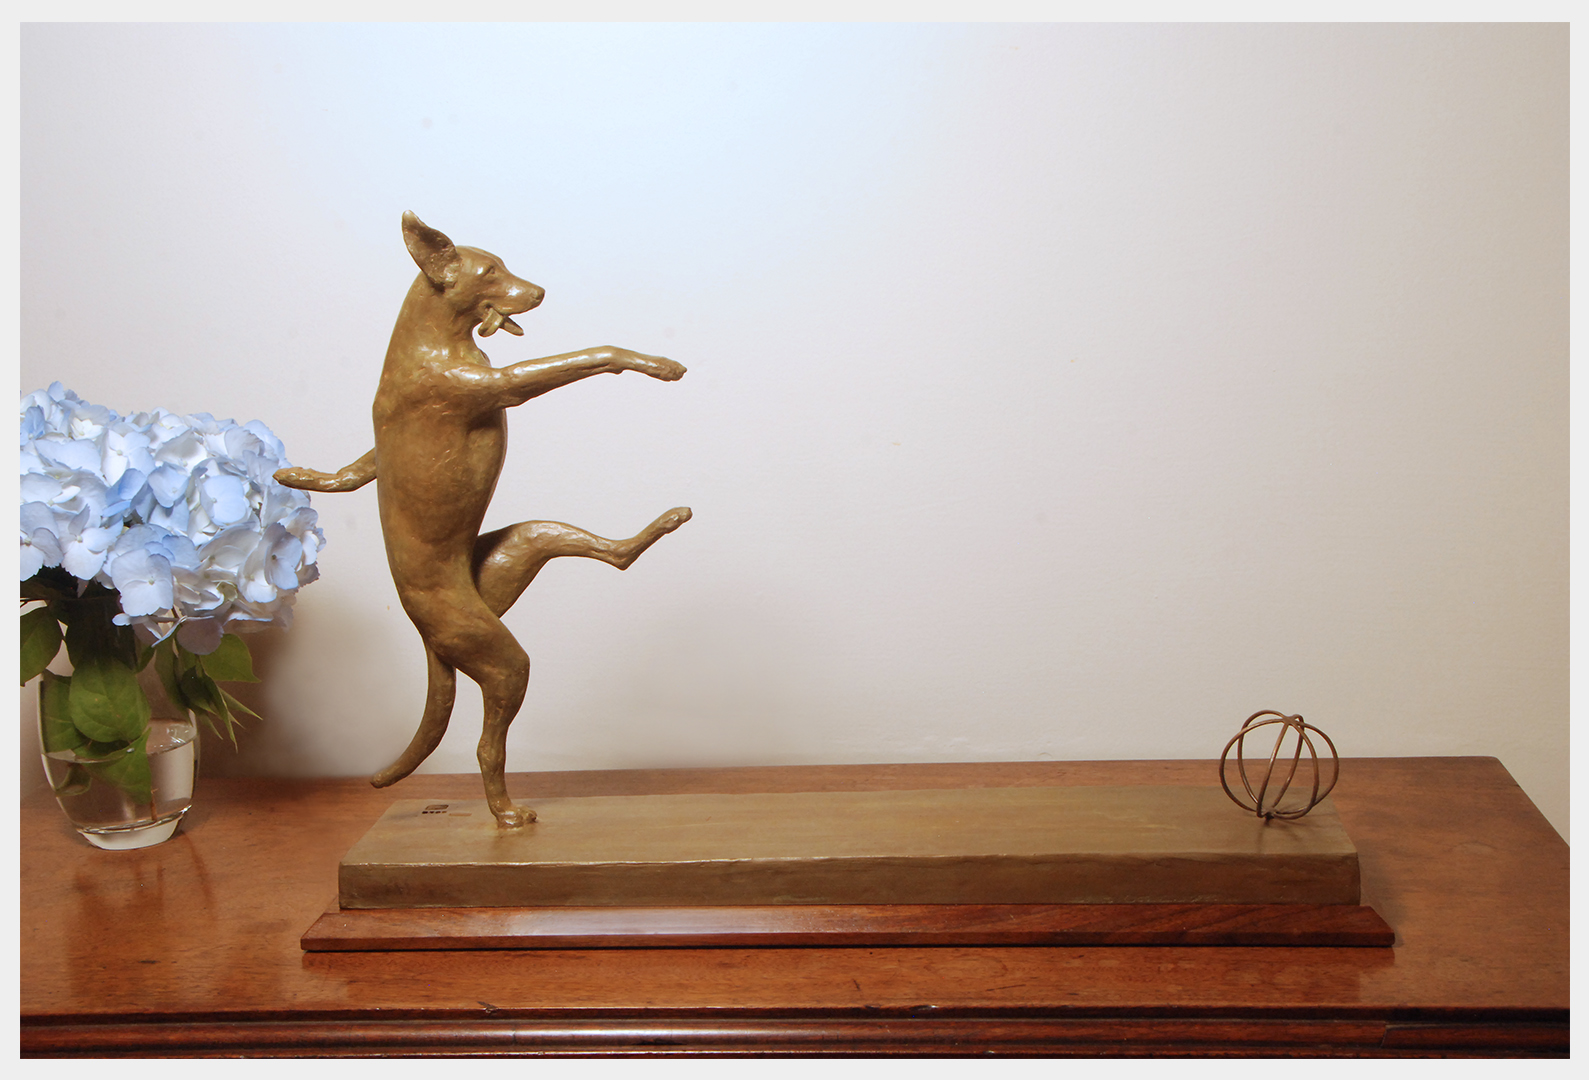 Realistic bronze sculpture on a base of a dog balanced on her right hind leg kicking a ball with her left hind foot front legs helping her balance looking forward mouth open tongue lolling out to right